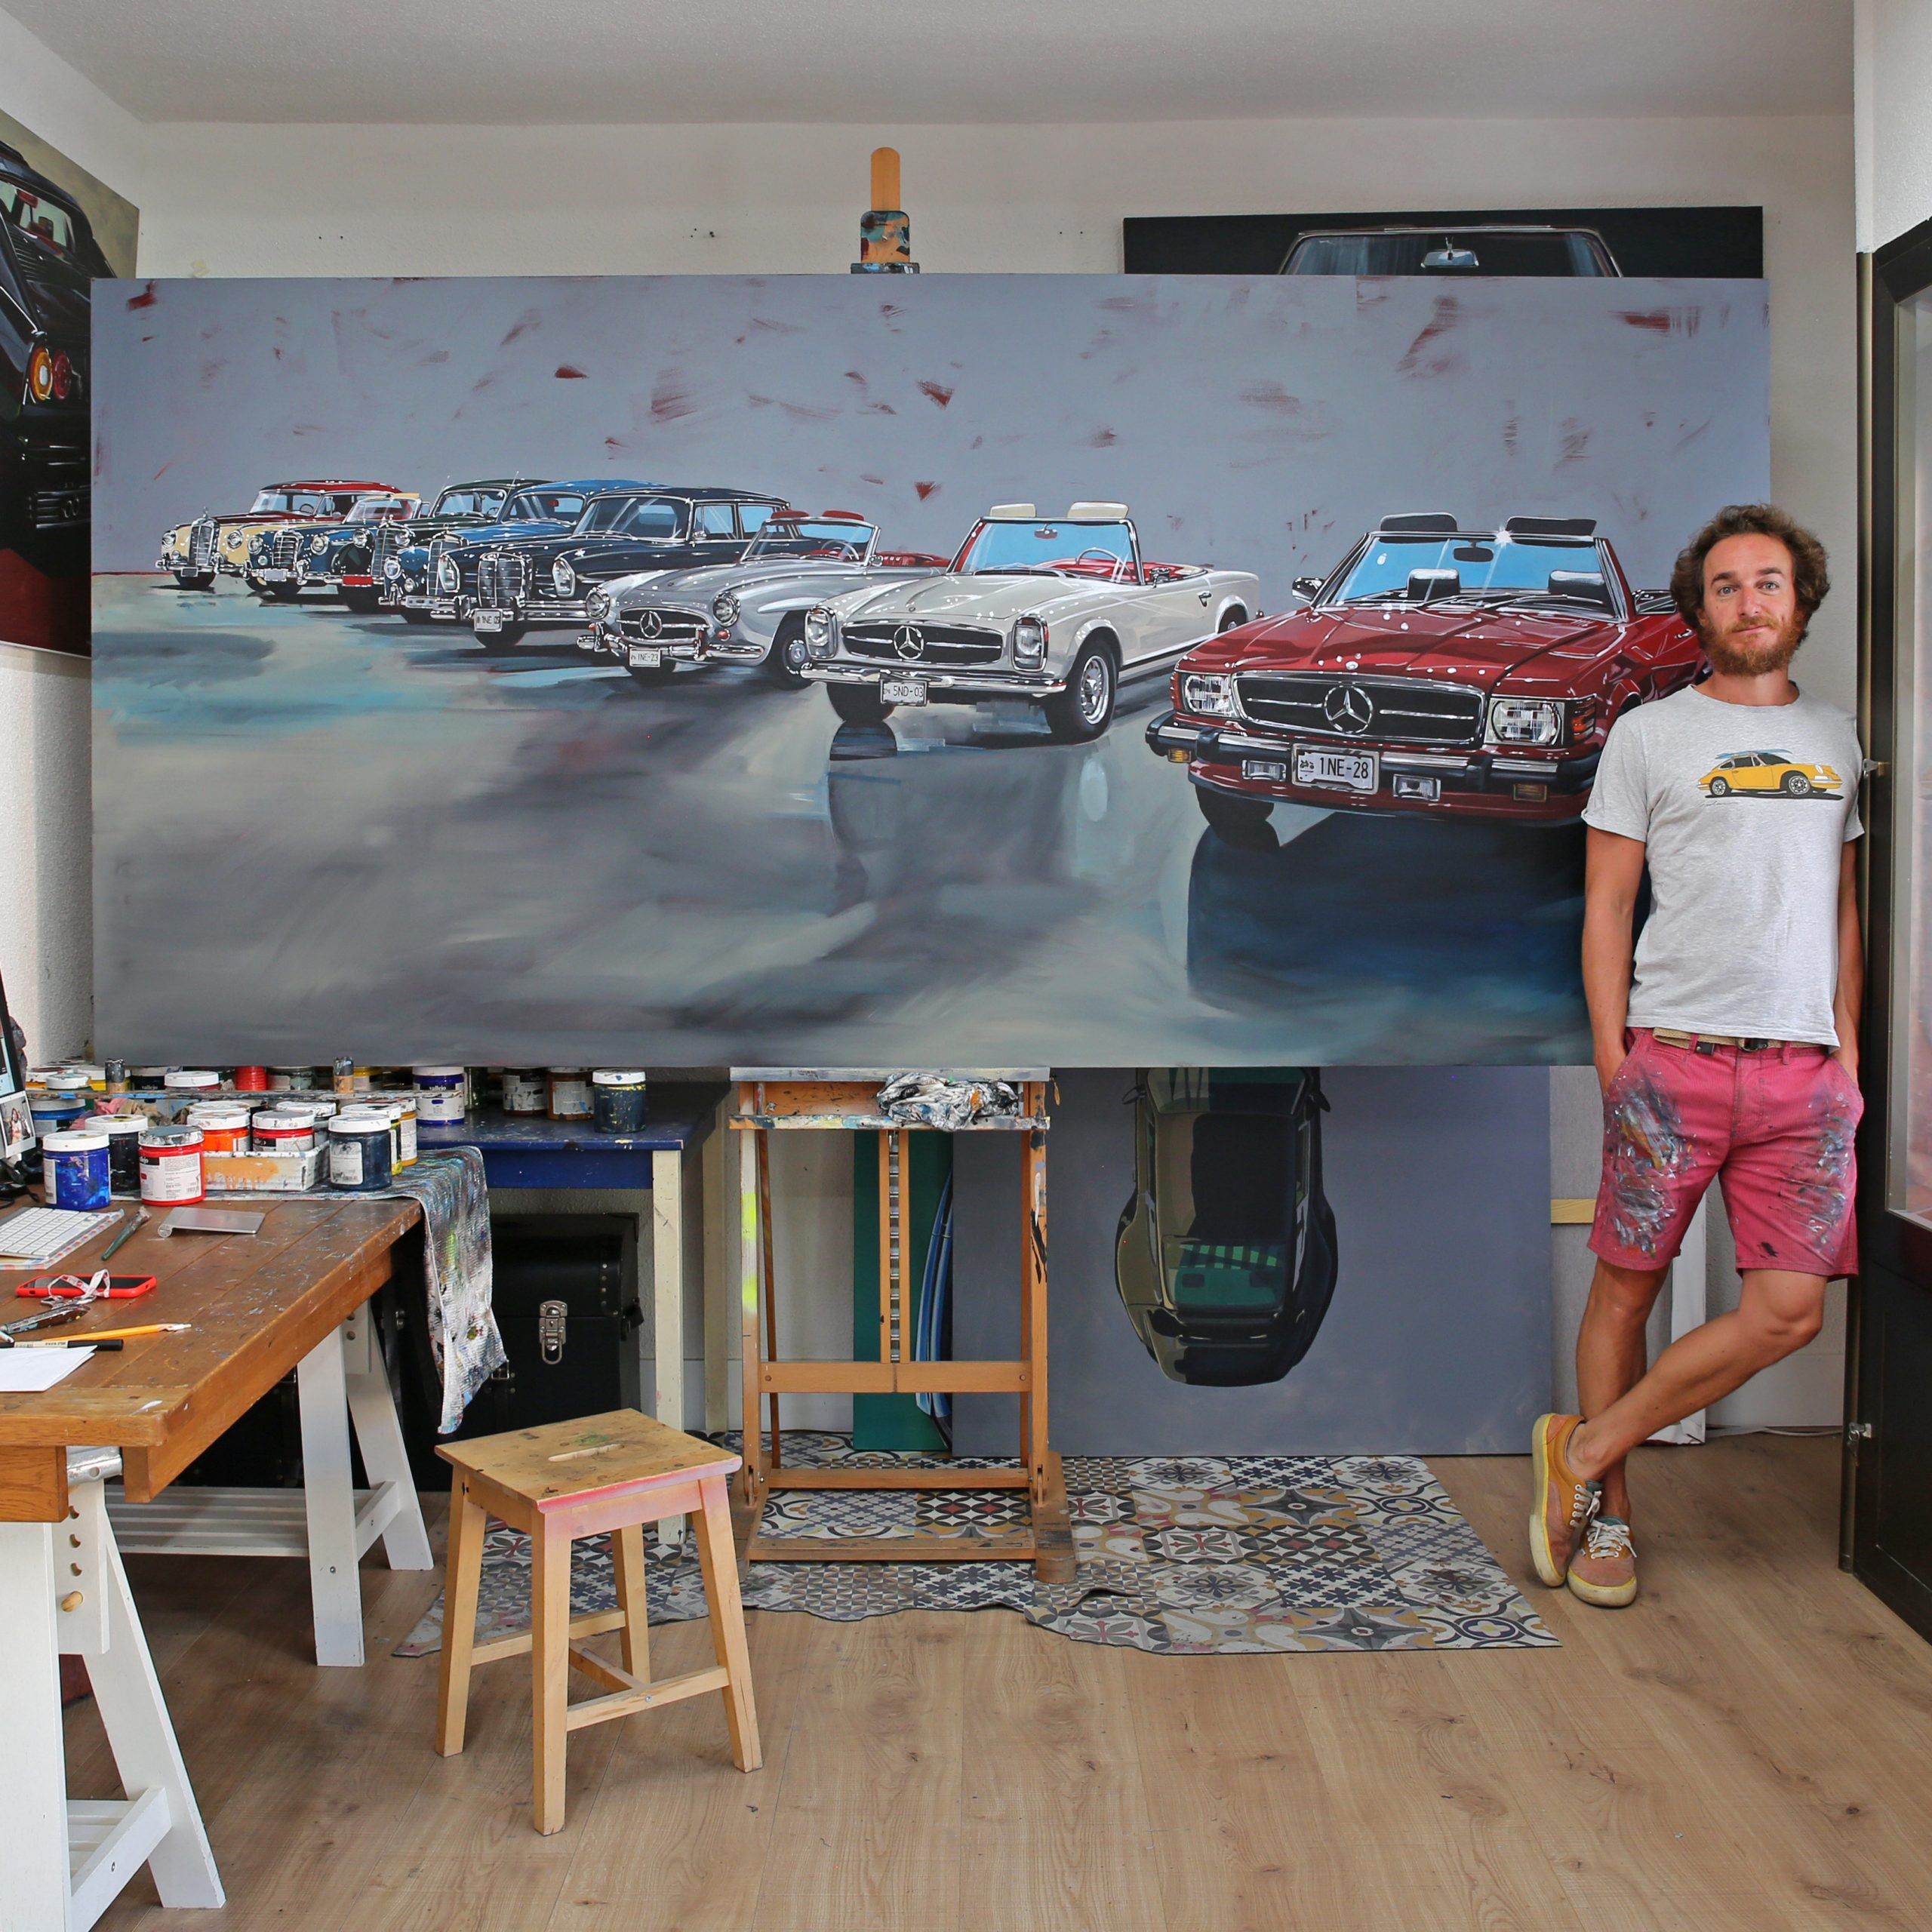 artist manu campa with classic mercedes-benz painting in studio